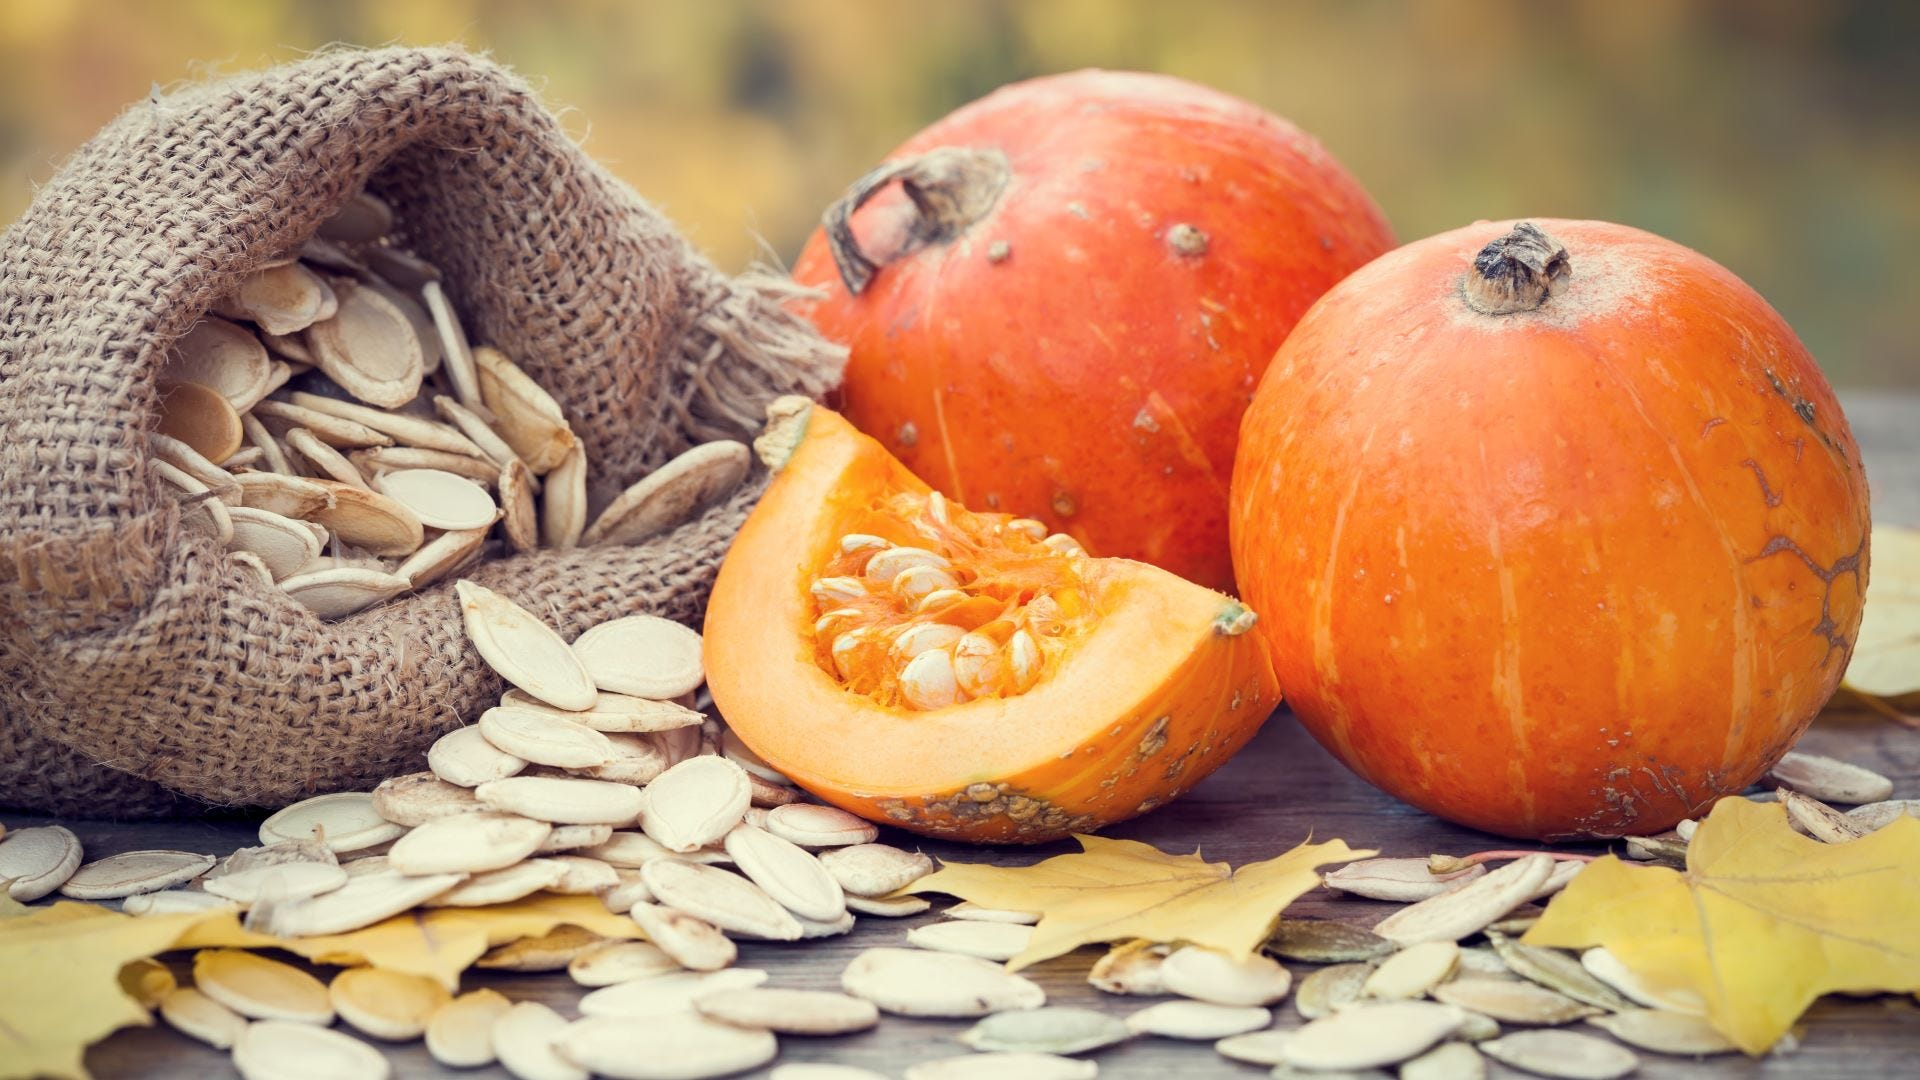 Two small pumpkins surrounded by pumpkin seeds.